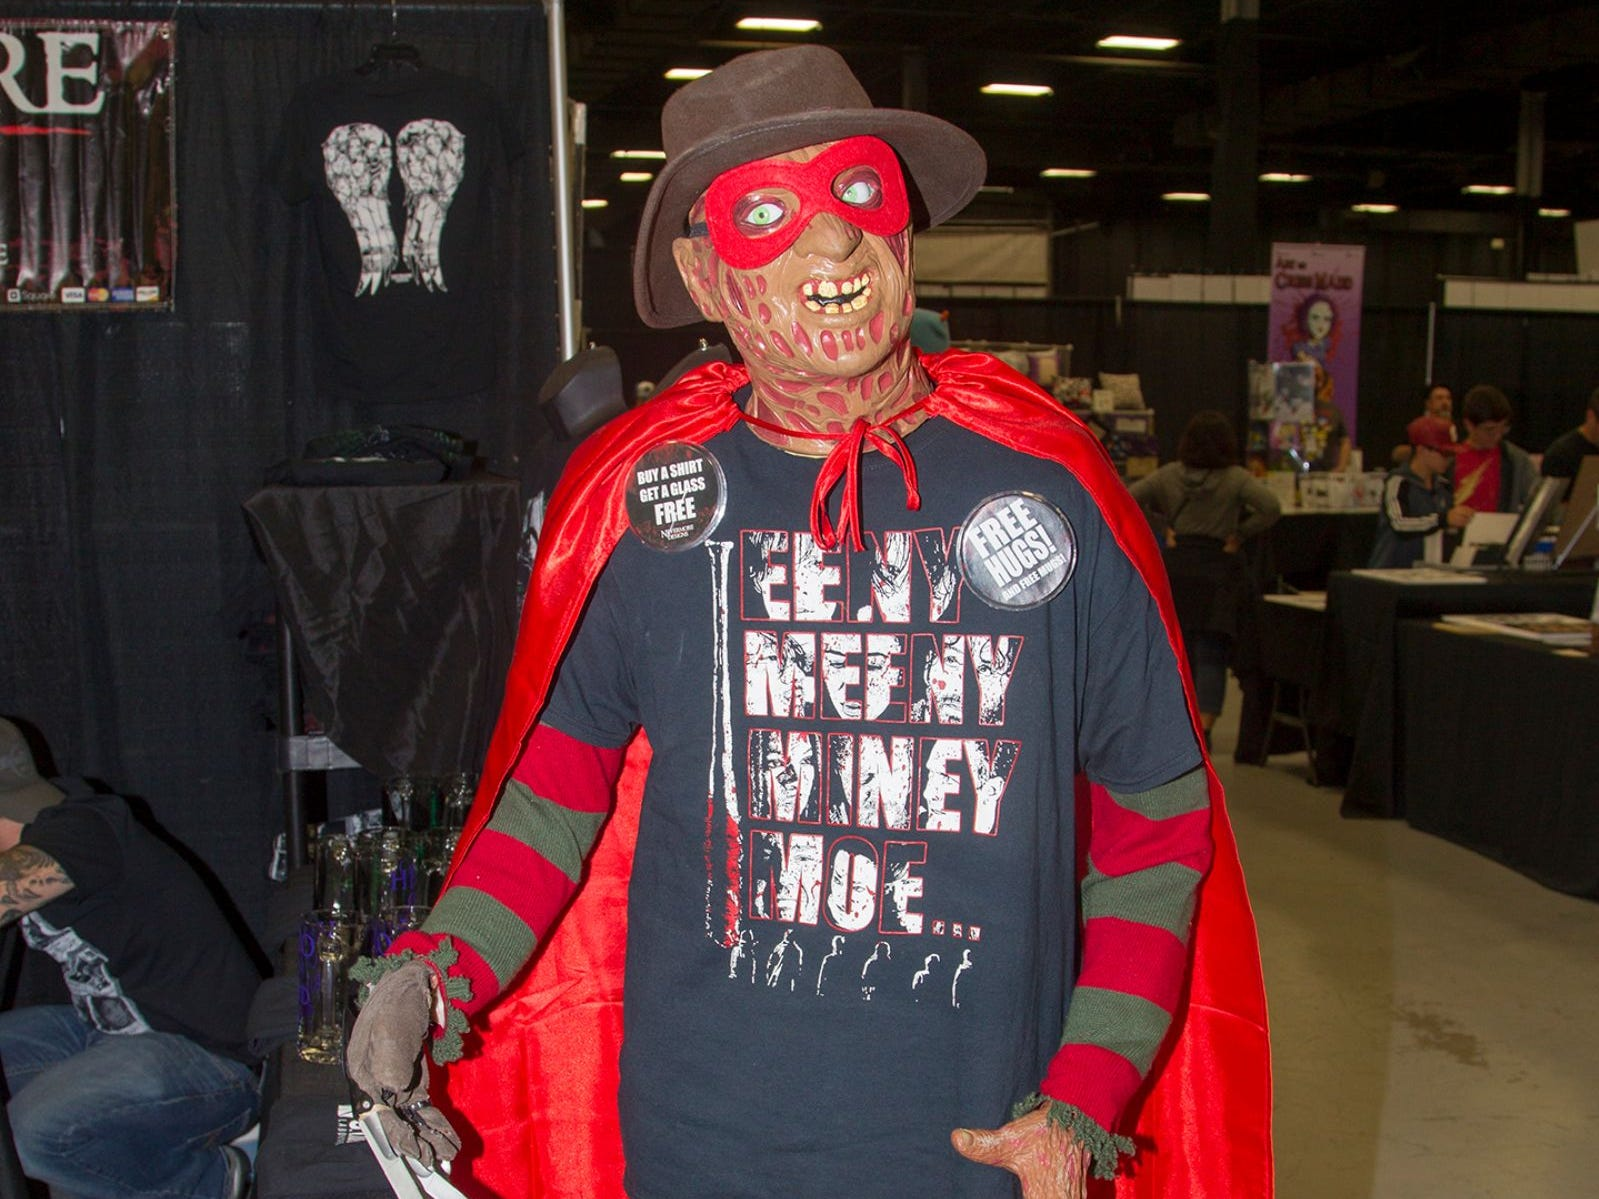 Freddy. The 2018 Heroes and Villains Fan Fest took place at the New Jersey Convention & Expo Center. 09/09/2018